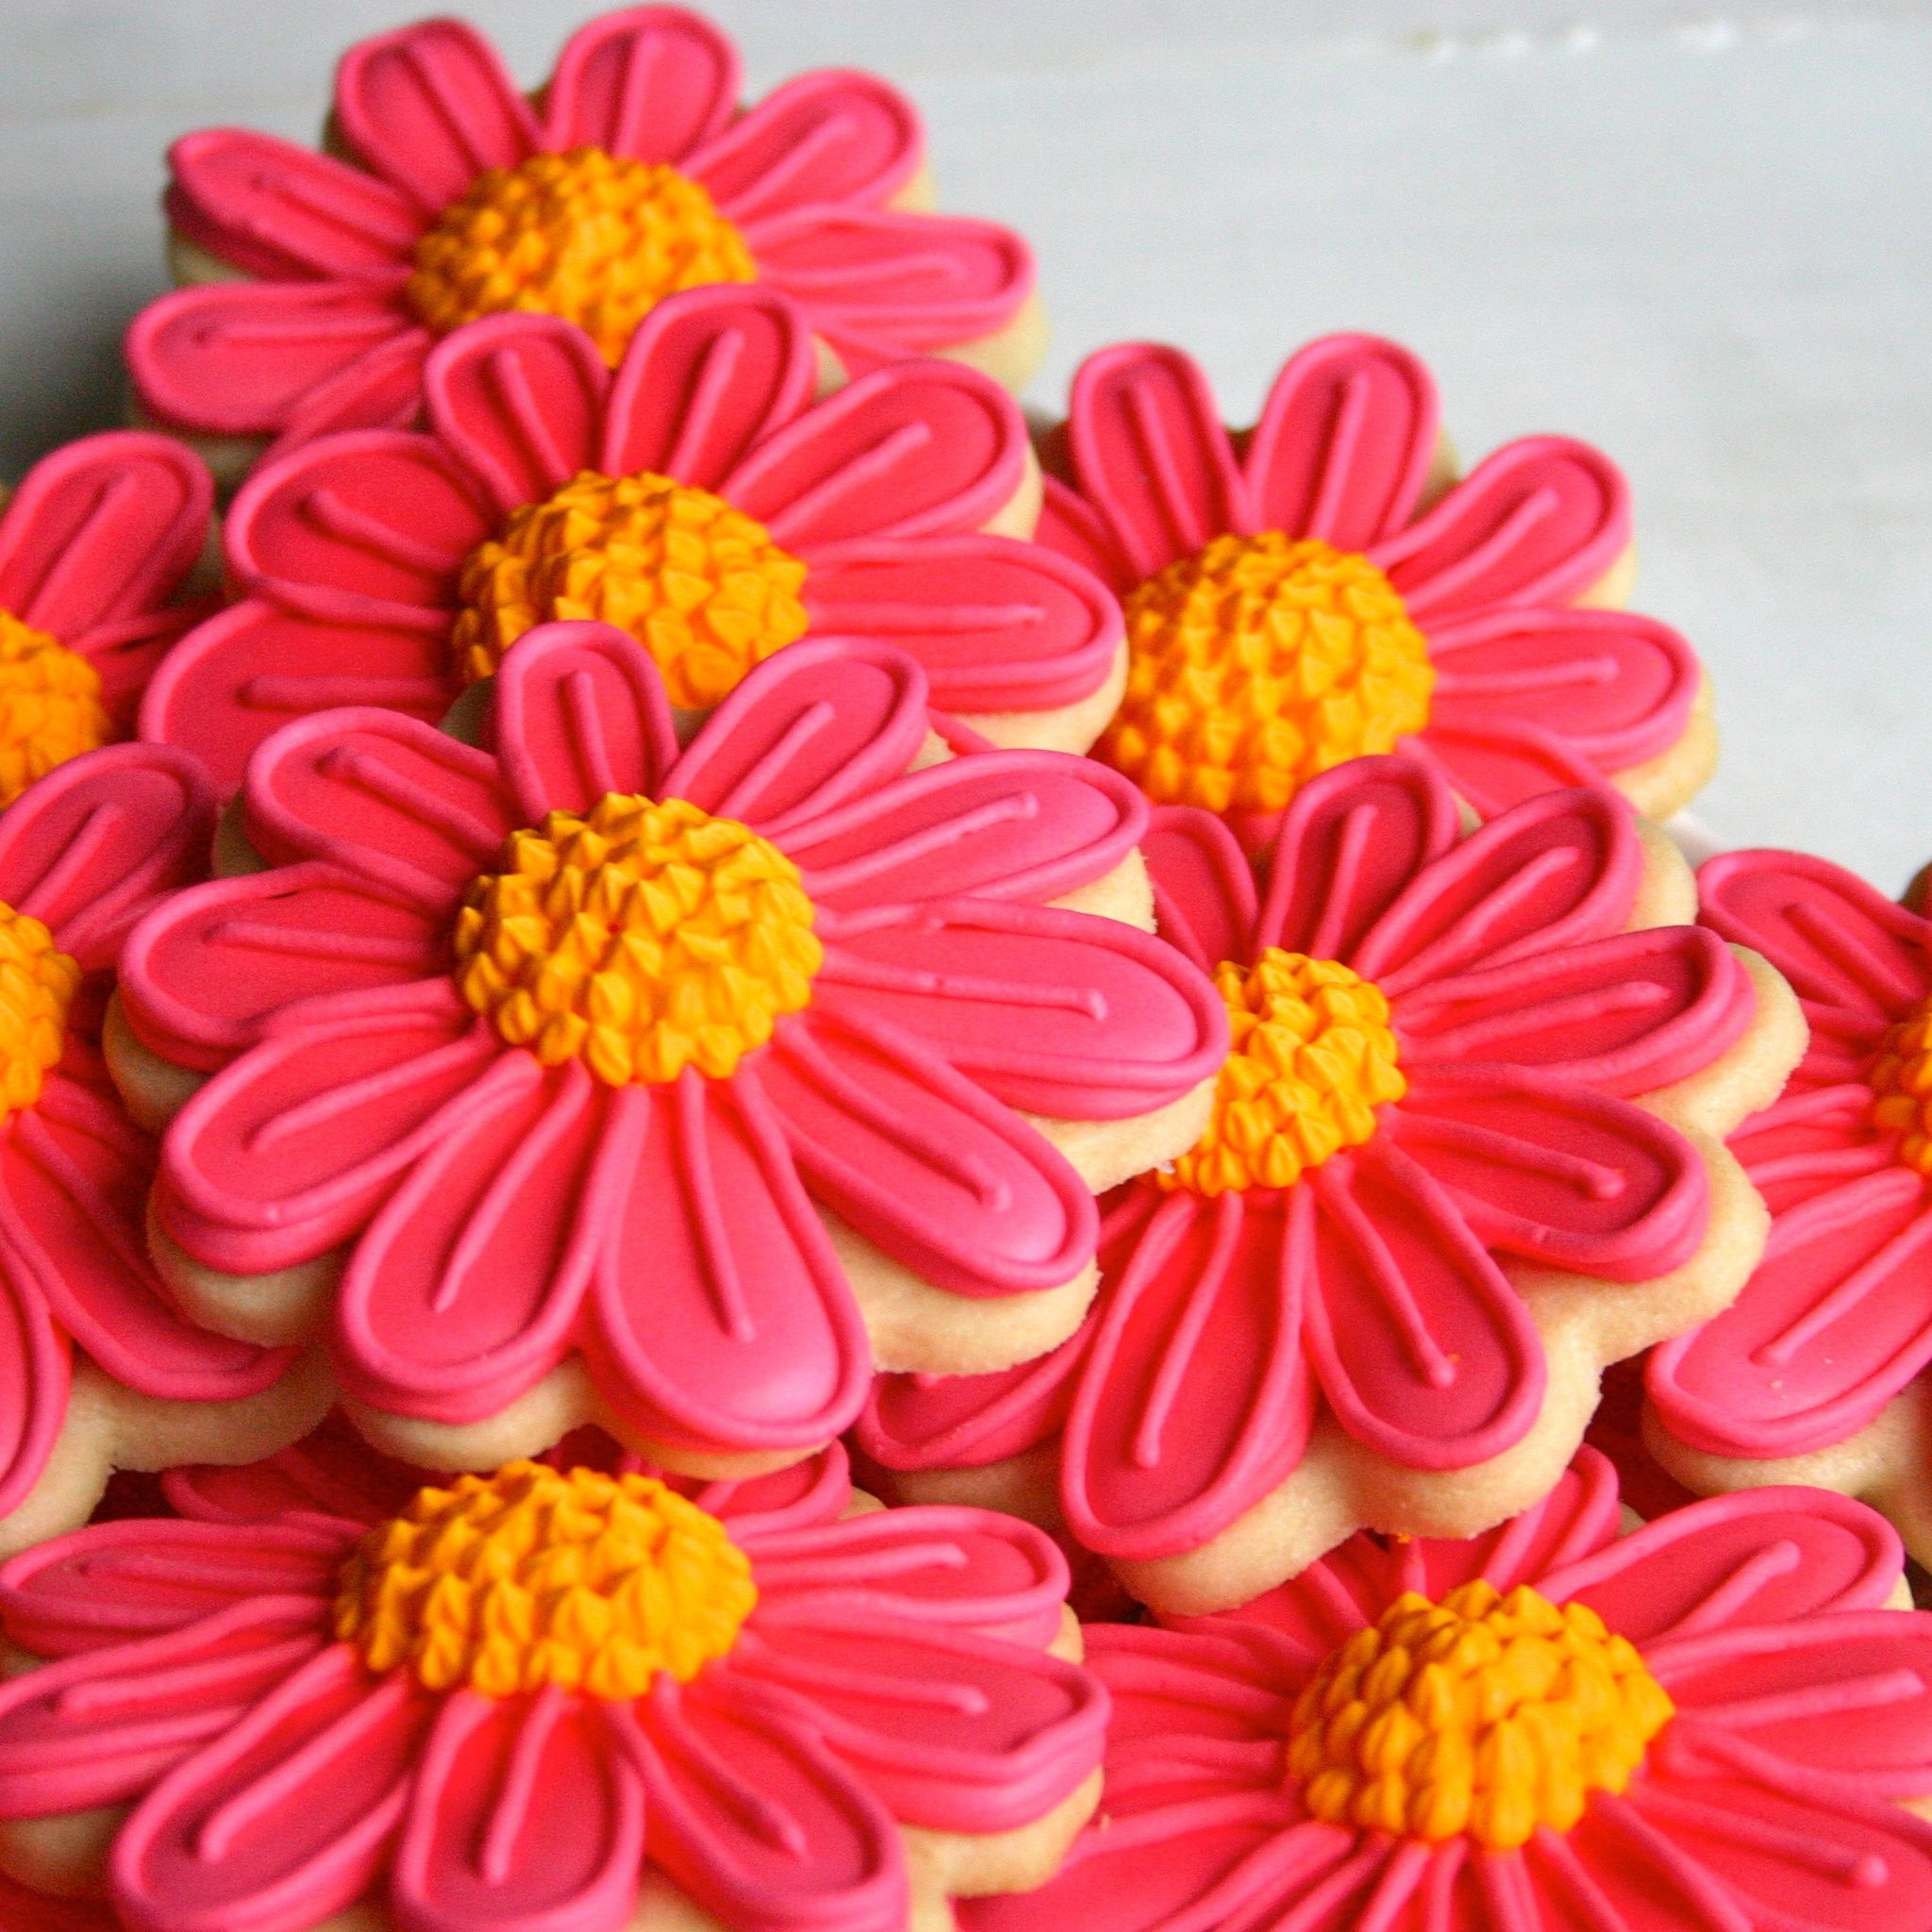 Beautiful Ways To Decorate A: Beautiful Way To Decorate Cookies For Spring!